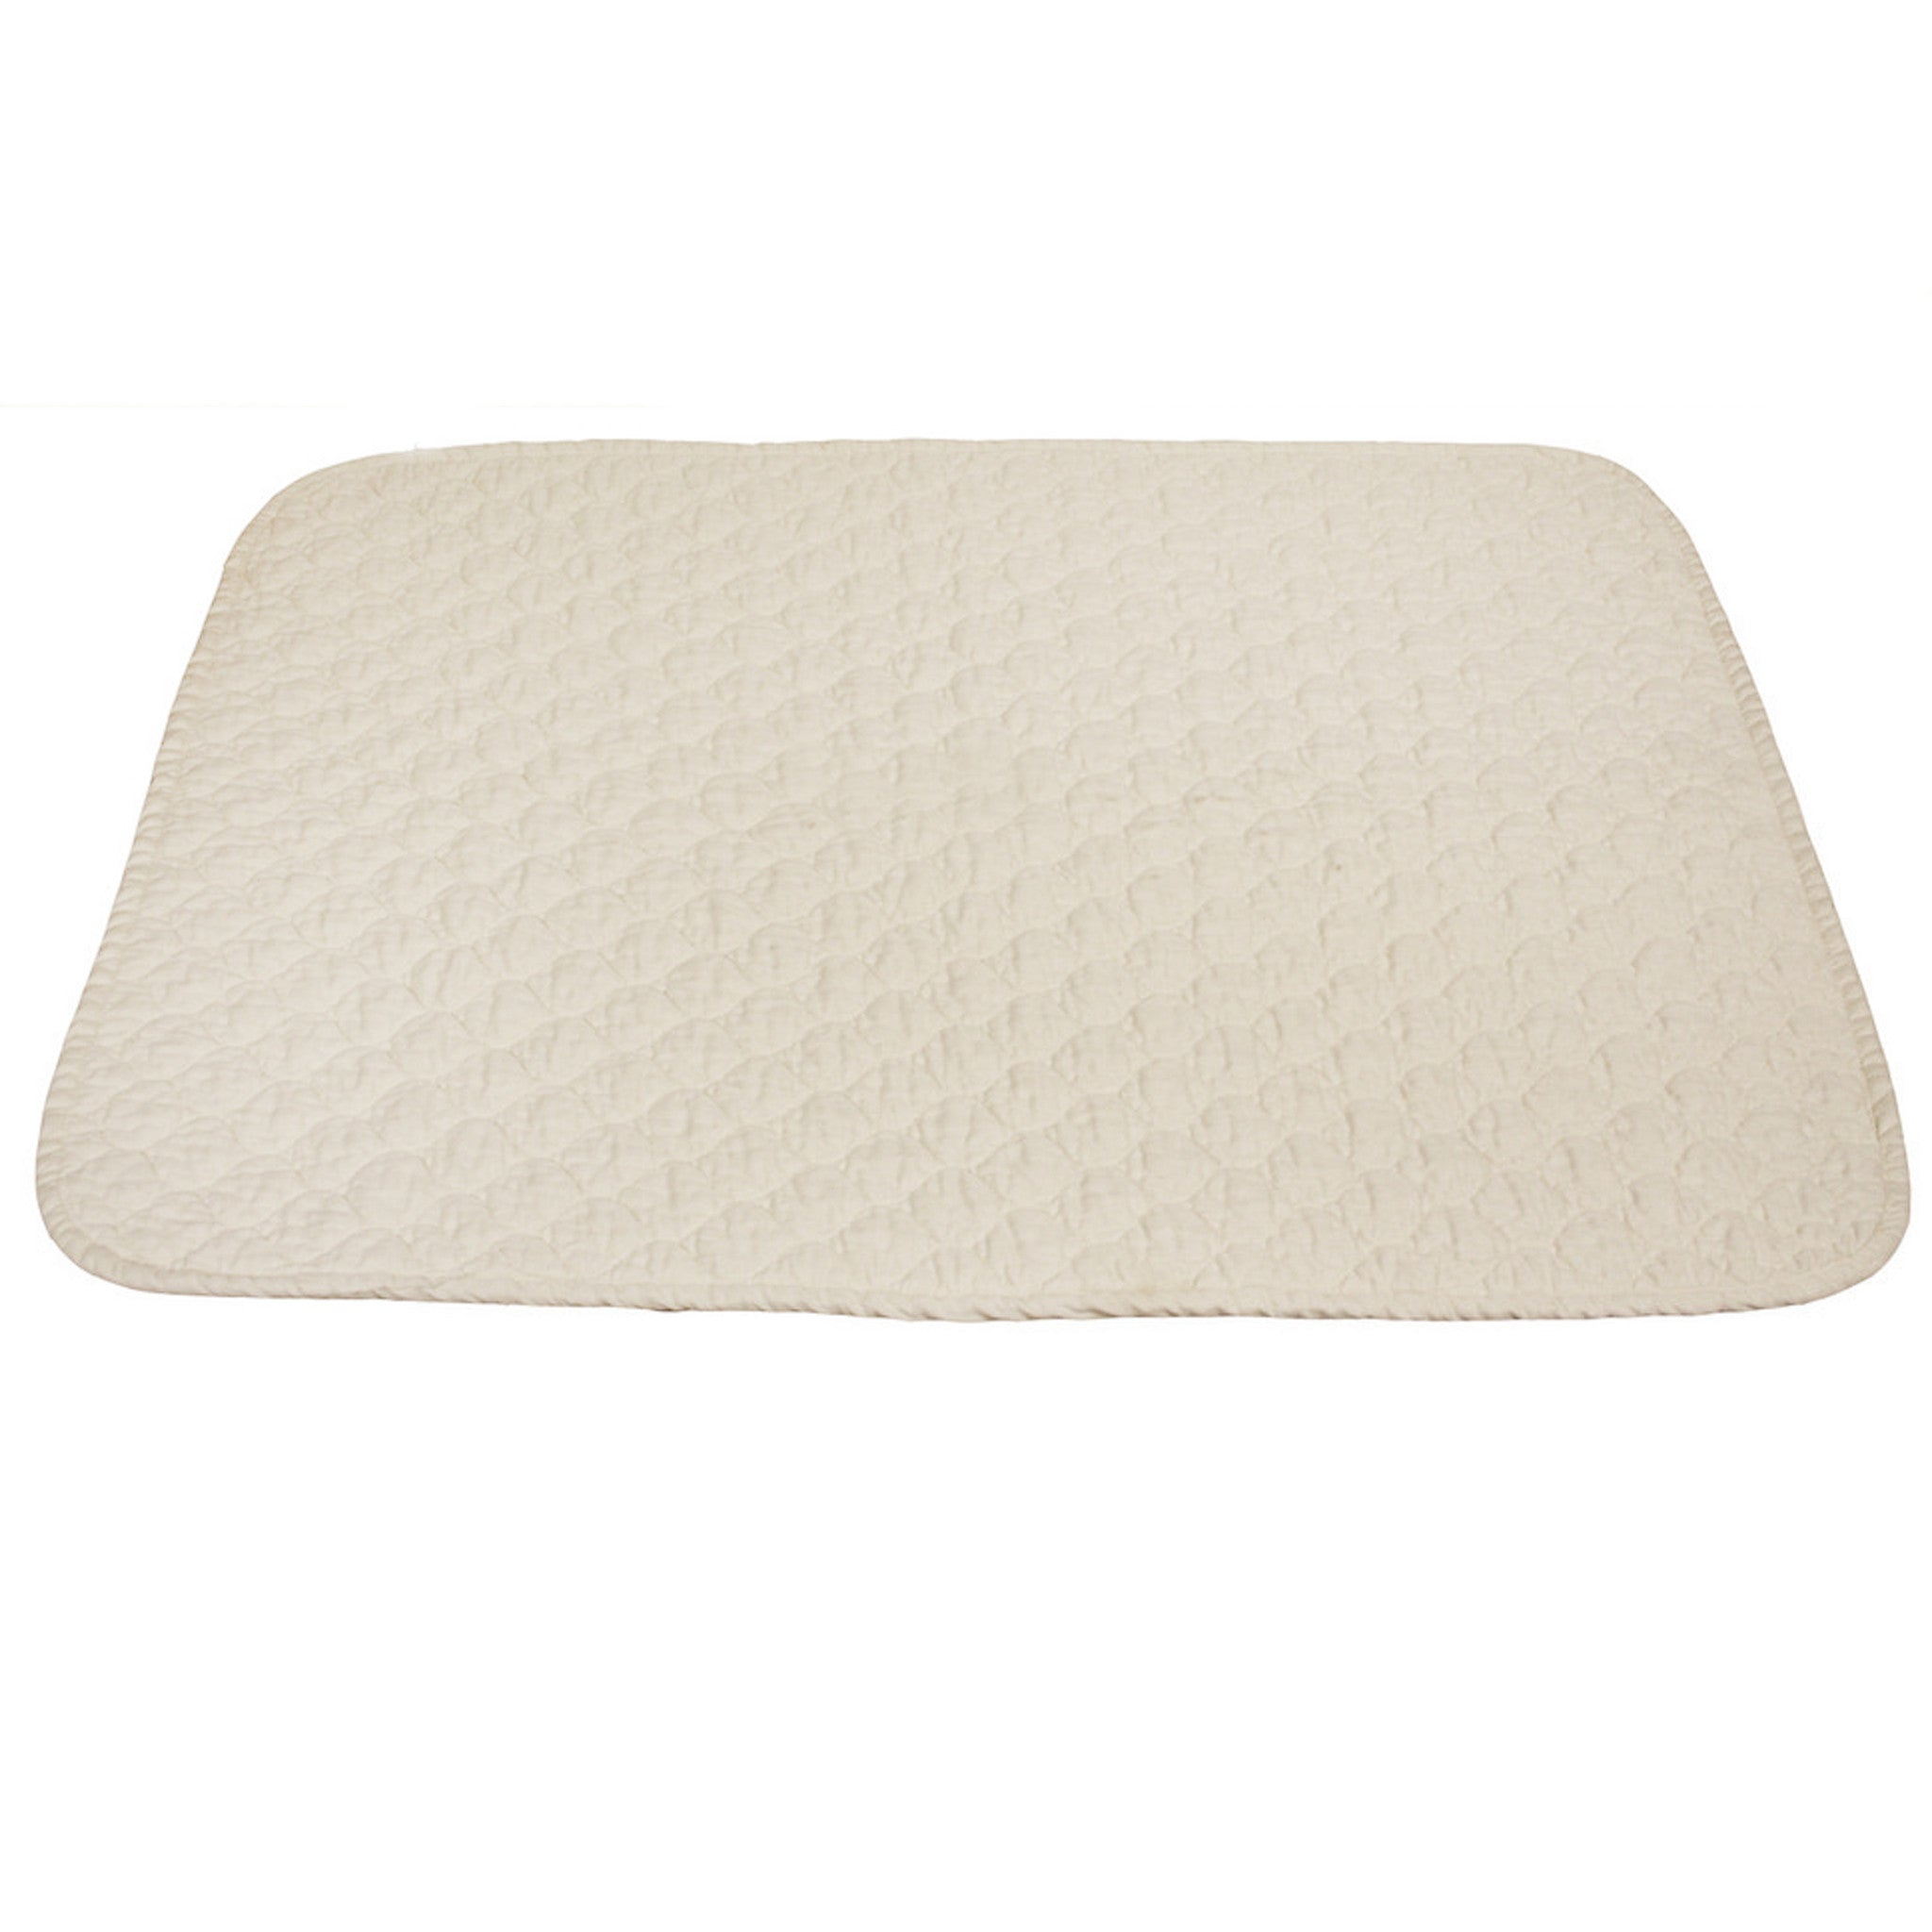 crib cribs cotton textiles mini pads pad for mattress baby organic sleeper products